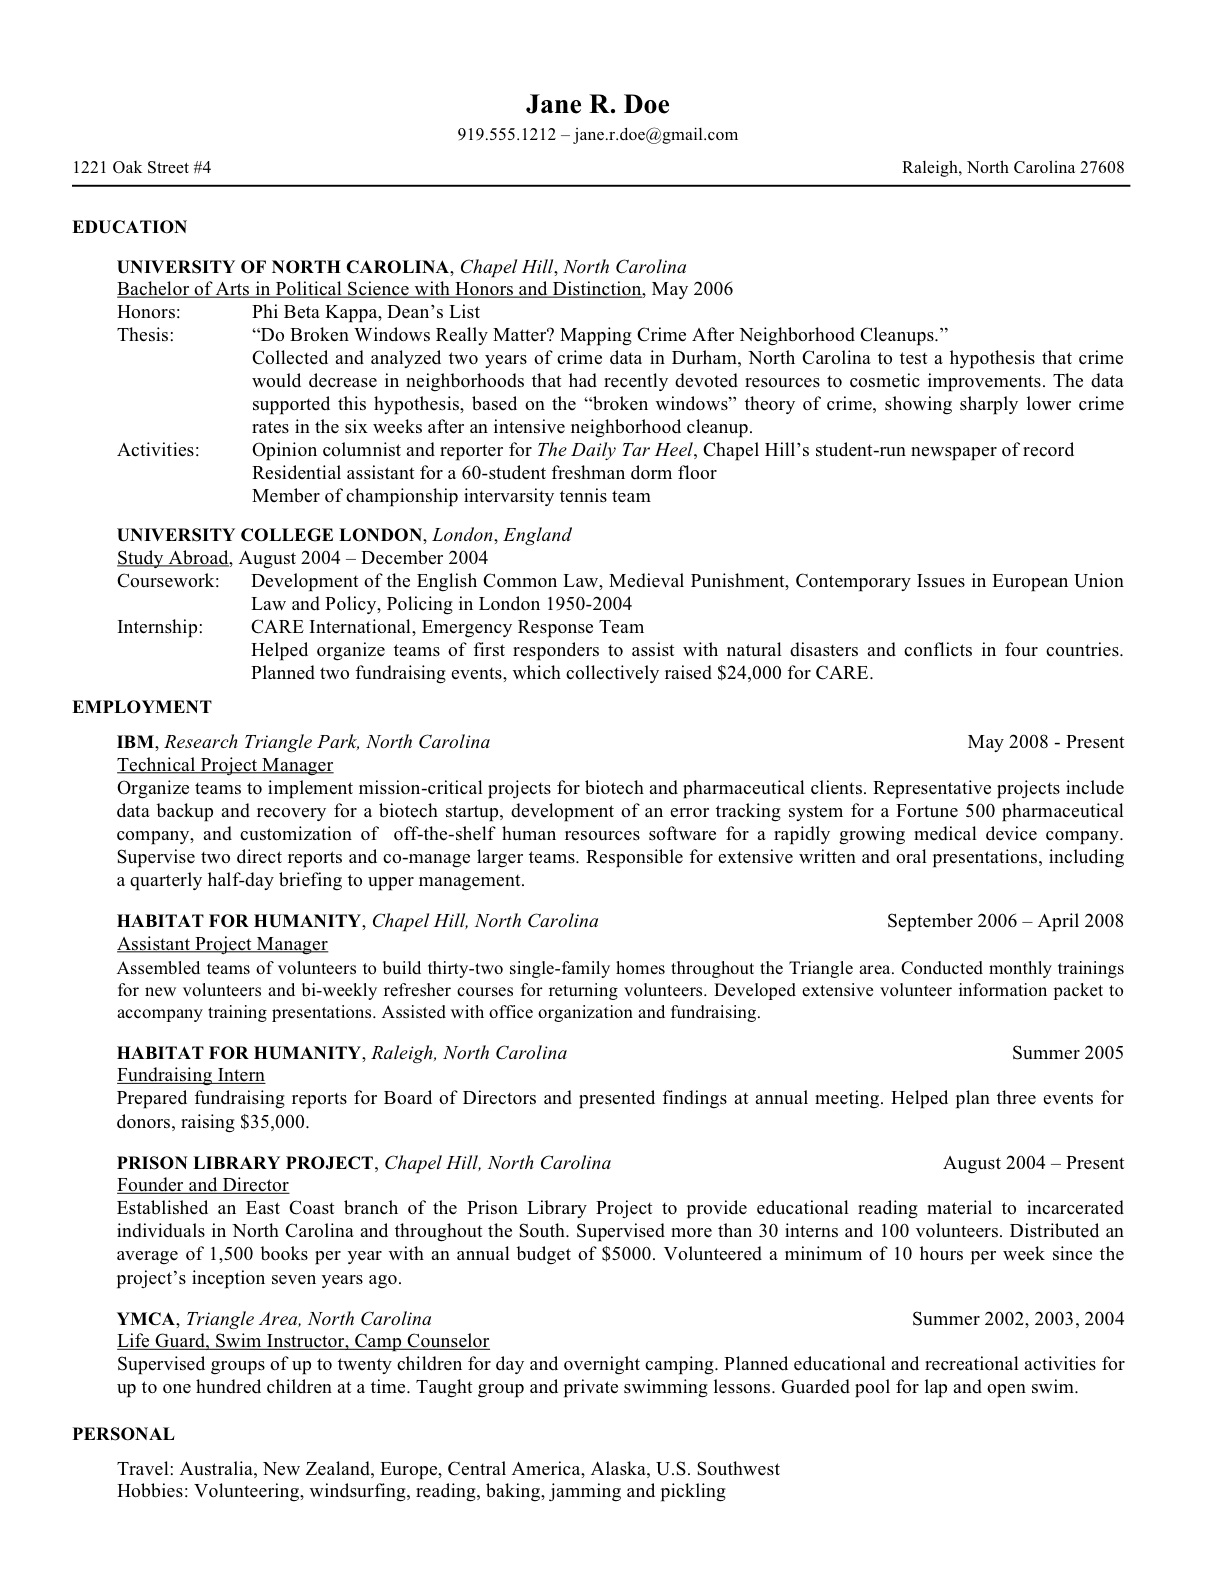 Resume For Law School